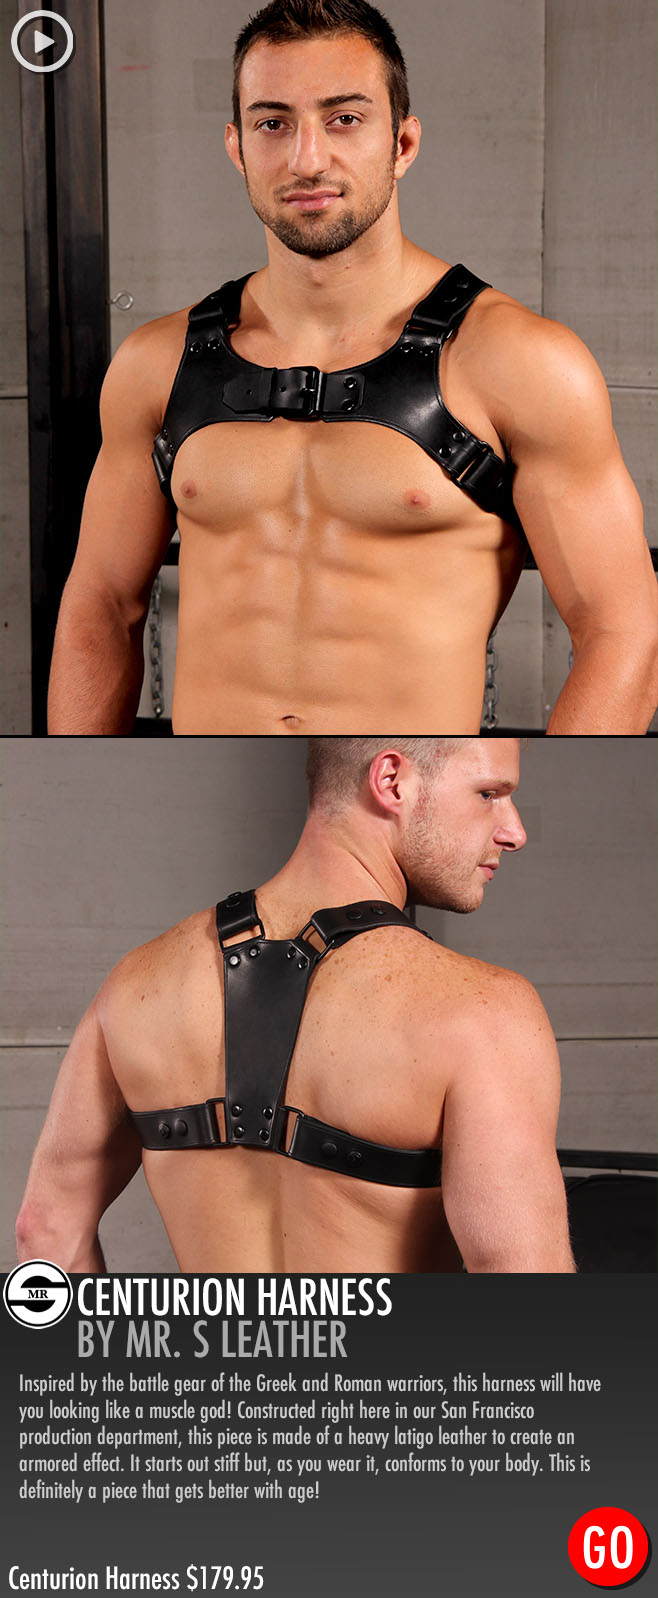 hot guy in a leather harness